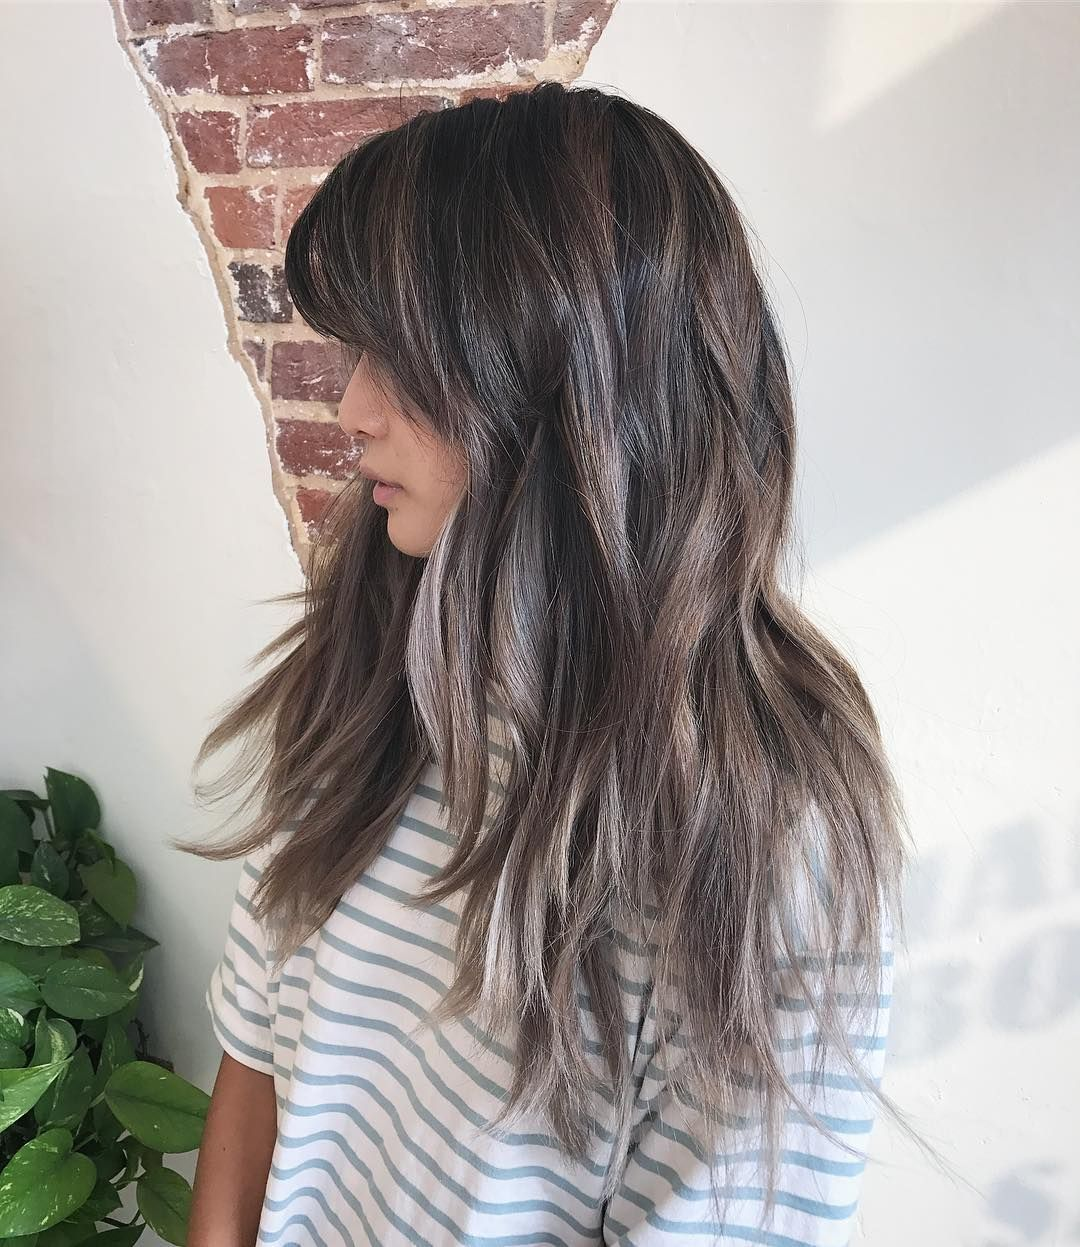 The 10 Prettiest Ash Brown Hair Ideas To Copy How To Get Ash Brown